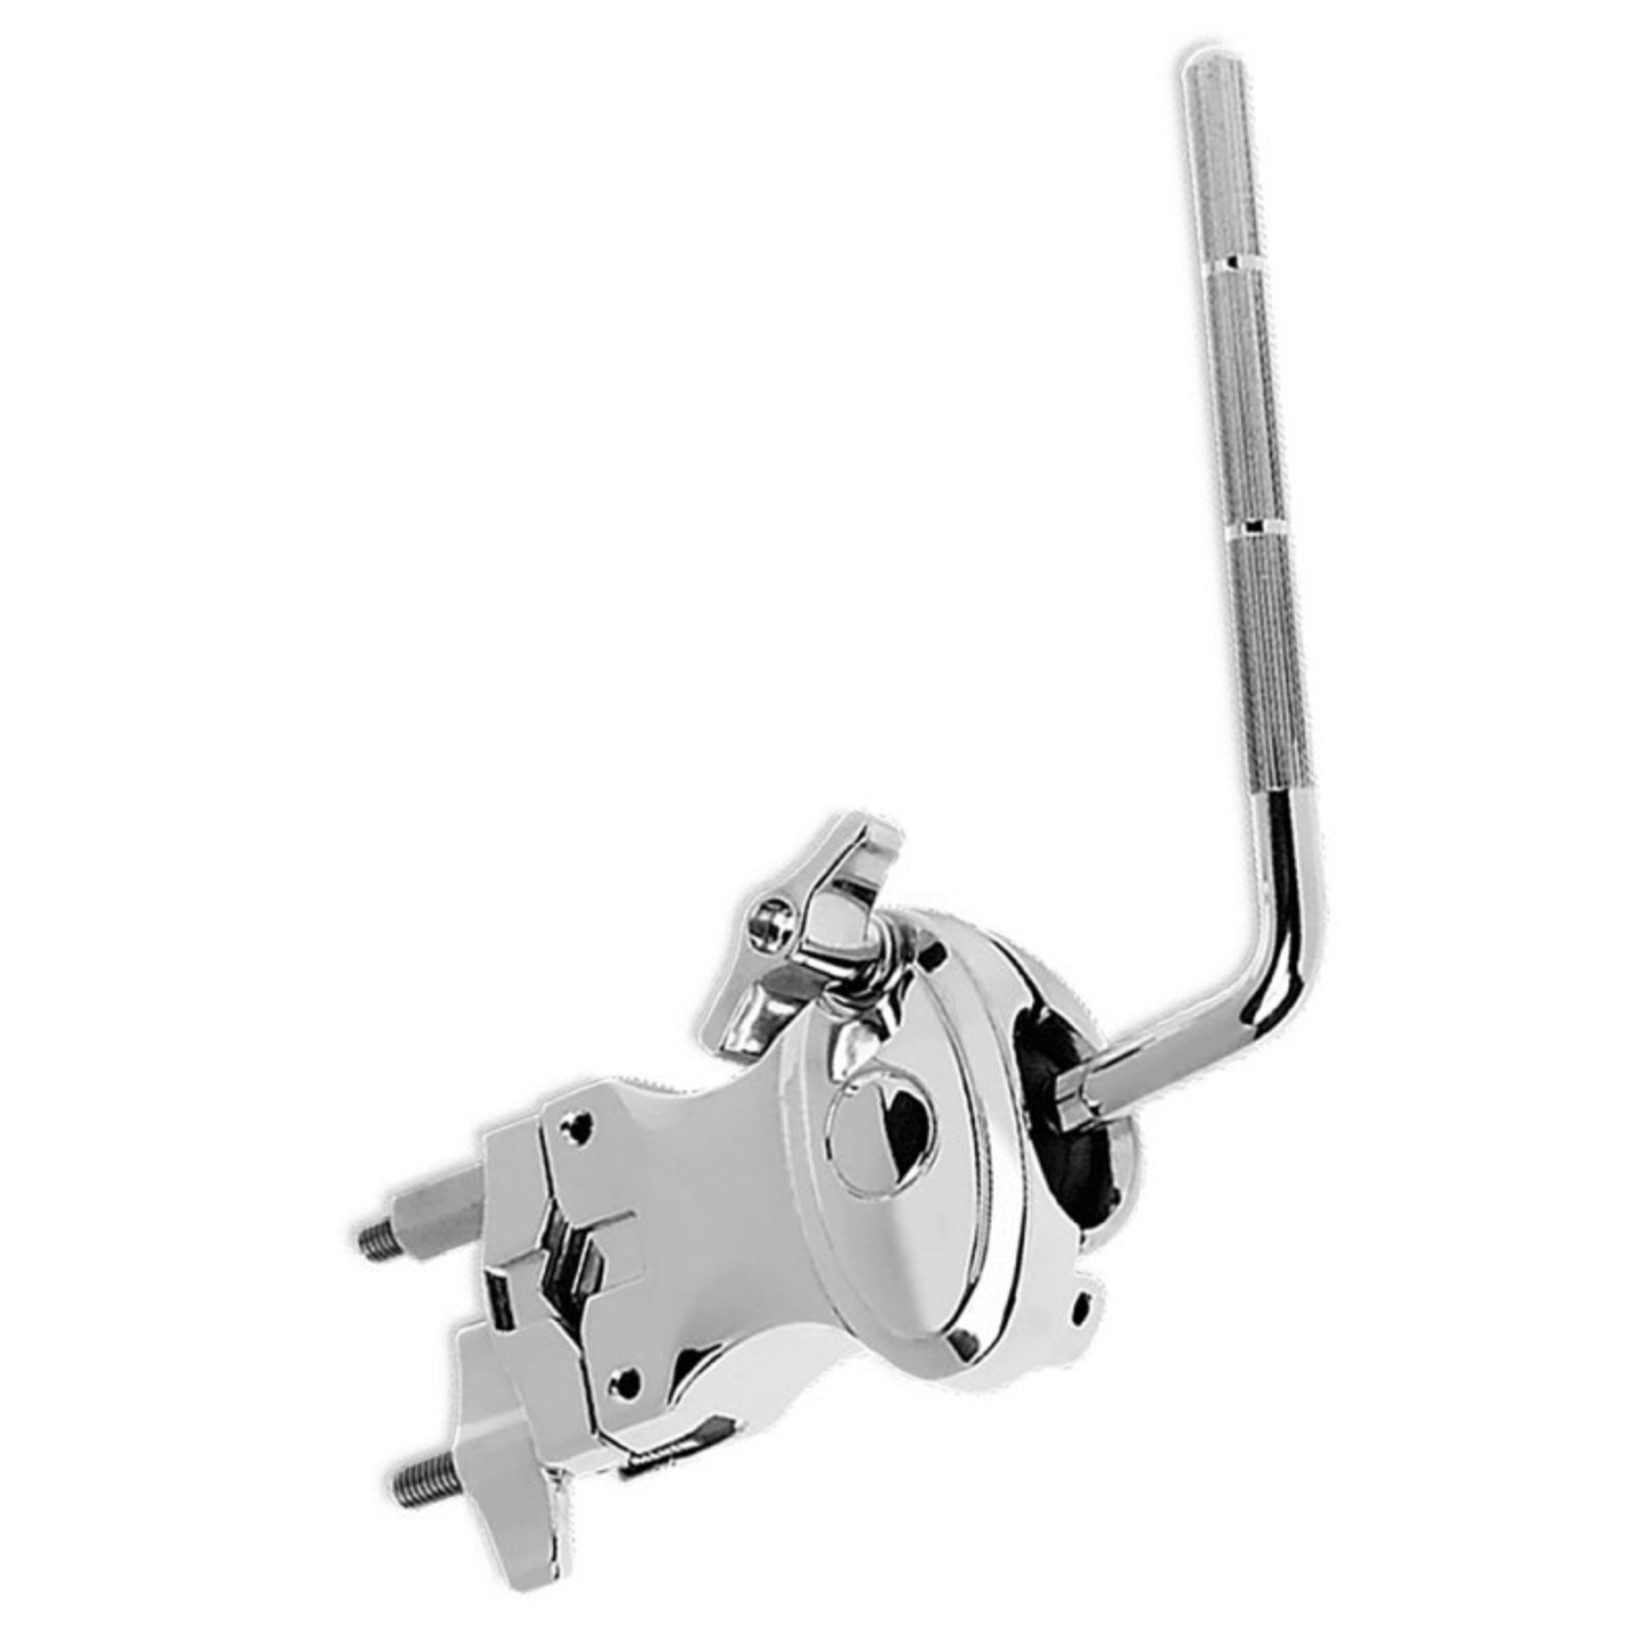 PDP PDP 10.5MM L-ARM WITH CLAMP PDAX99105